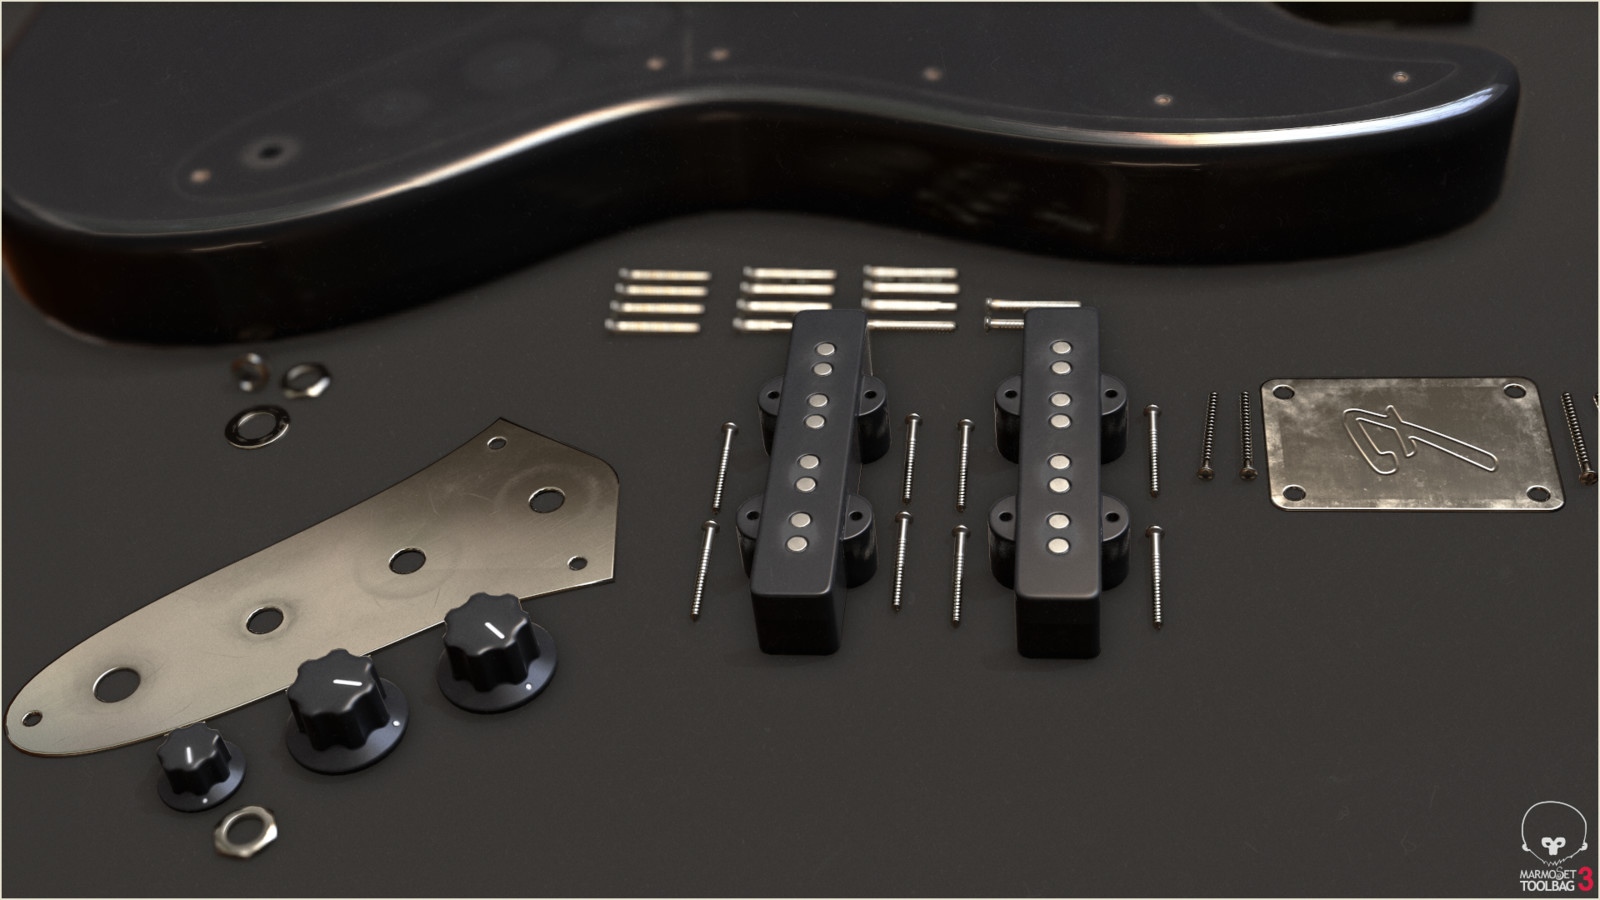 Pickups & Tuning Knobs Disassembled (Low Poly)